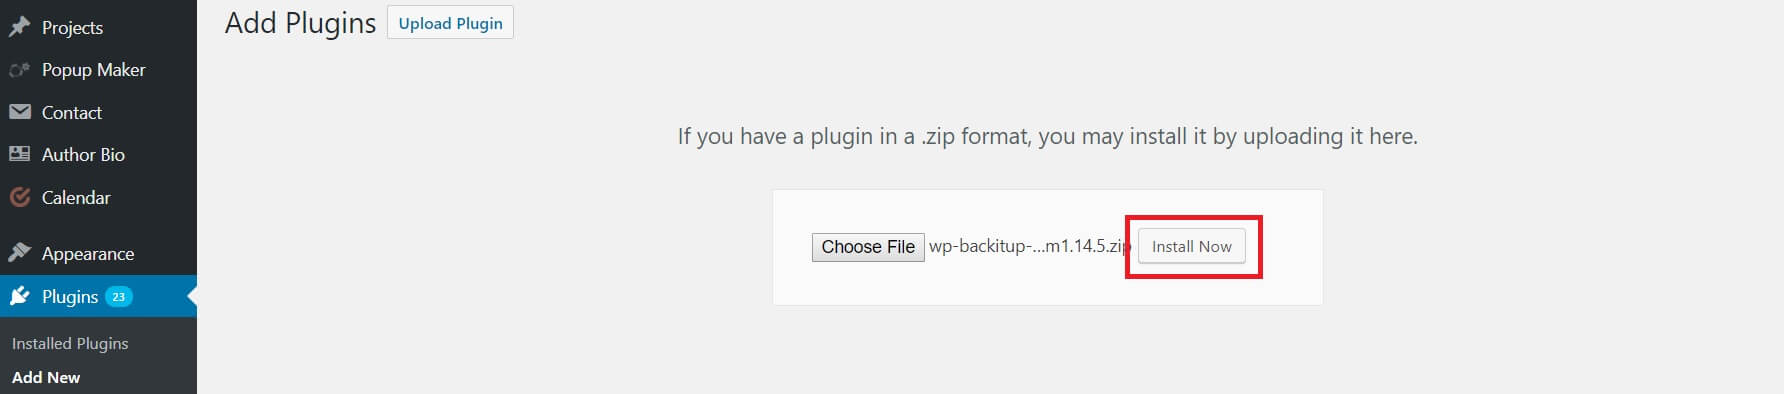 Install Now button for plugins